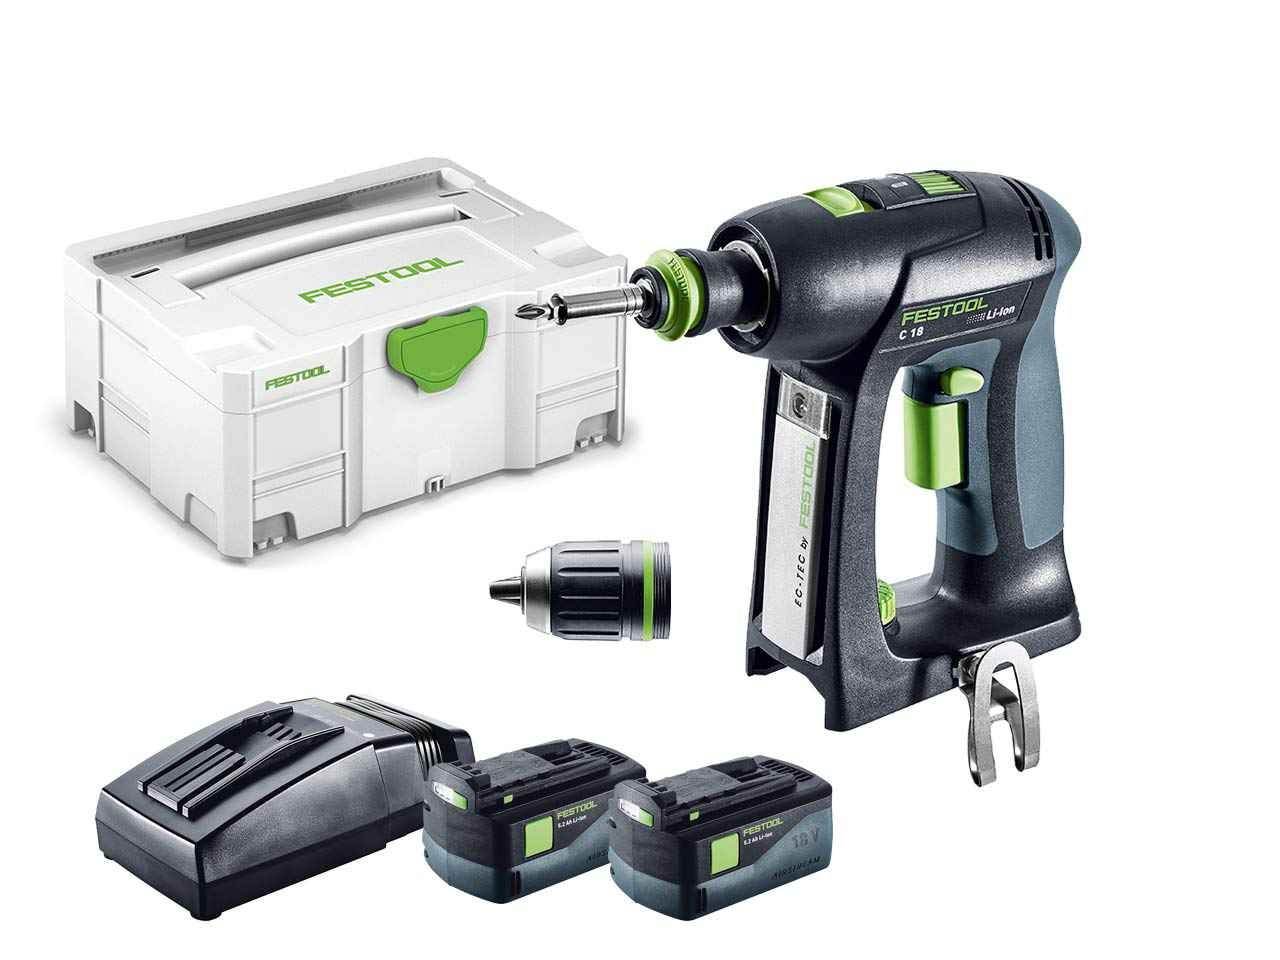 festool c 18 li 5 2 plus 18v cordless drill in systainer 2. Black Bedroom Furniture Sets. Home Design Ideas